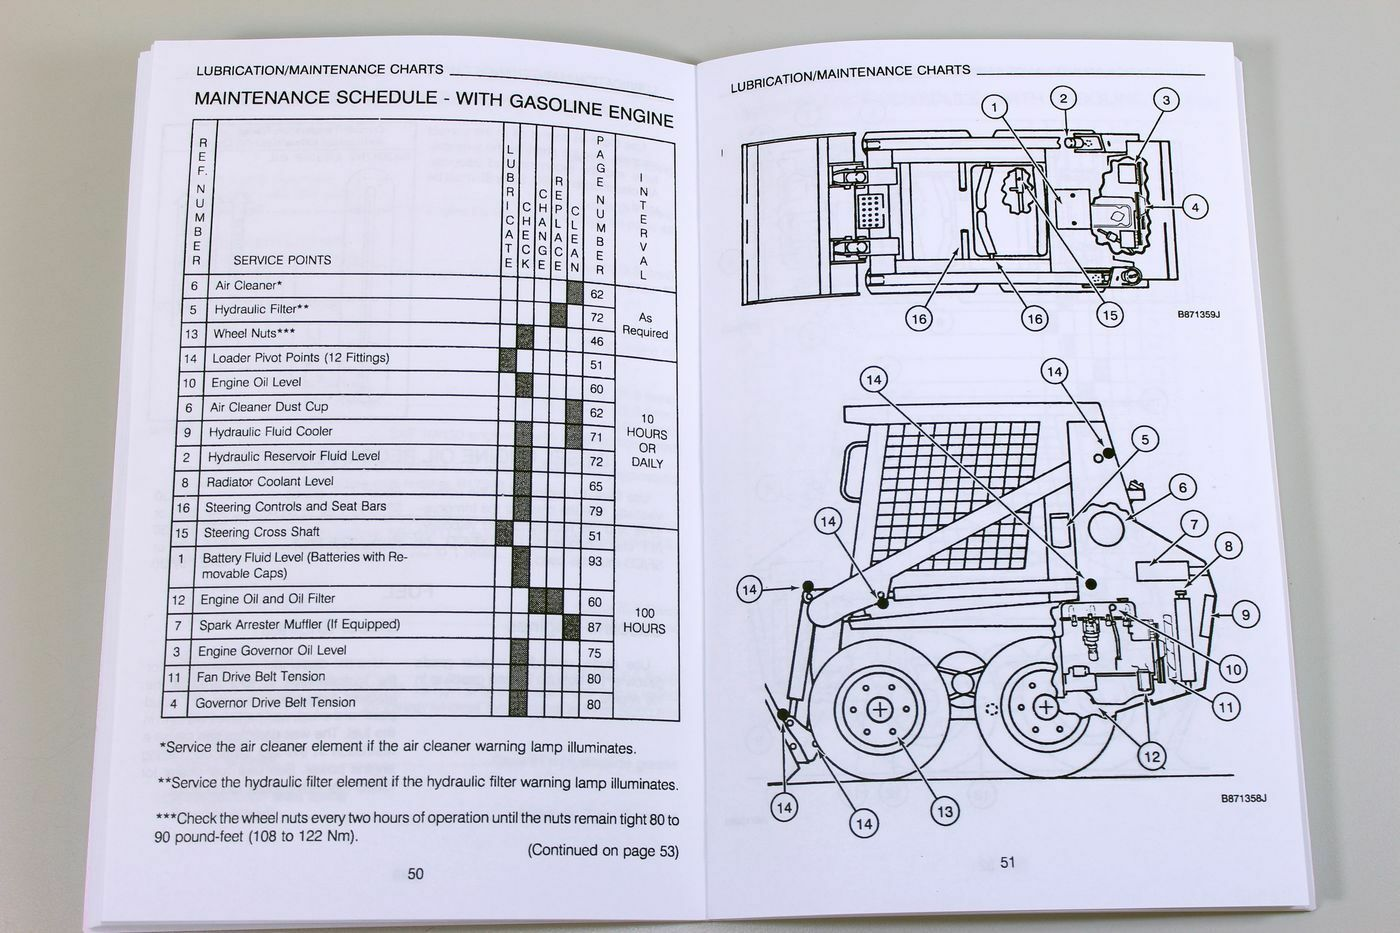 Case 1825 Uni Loader Skid Steer Owners Operators Manual Maintenance  Lubrication | eBay